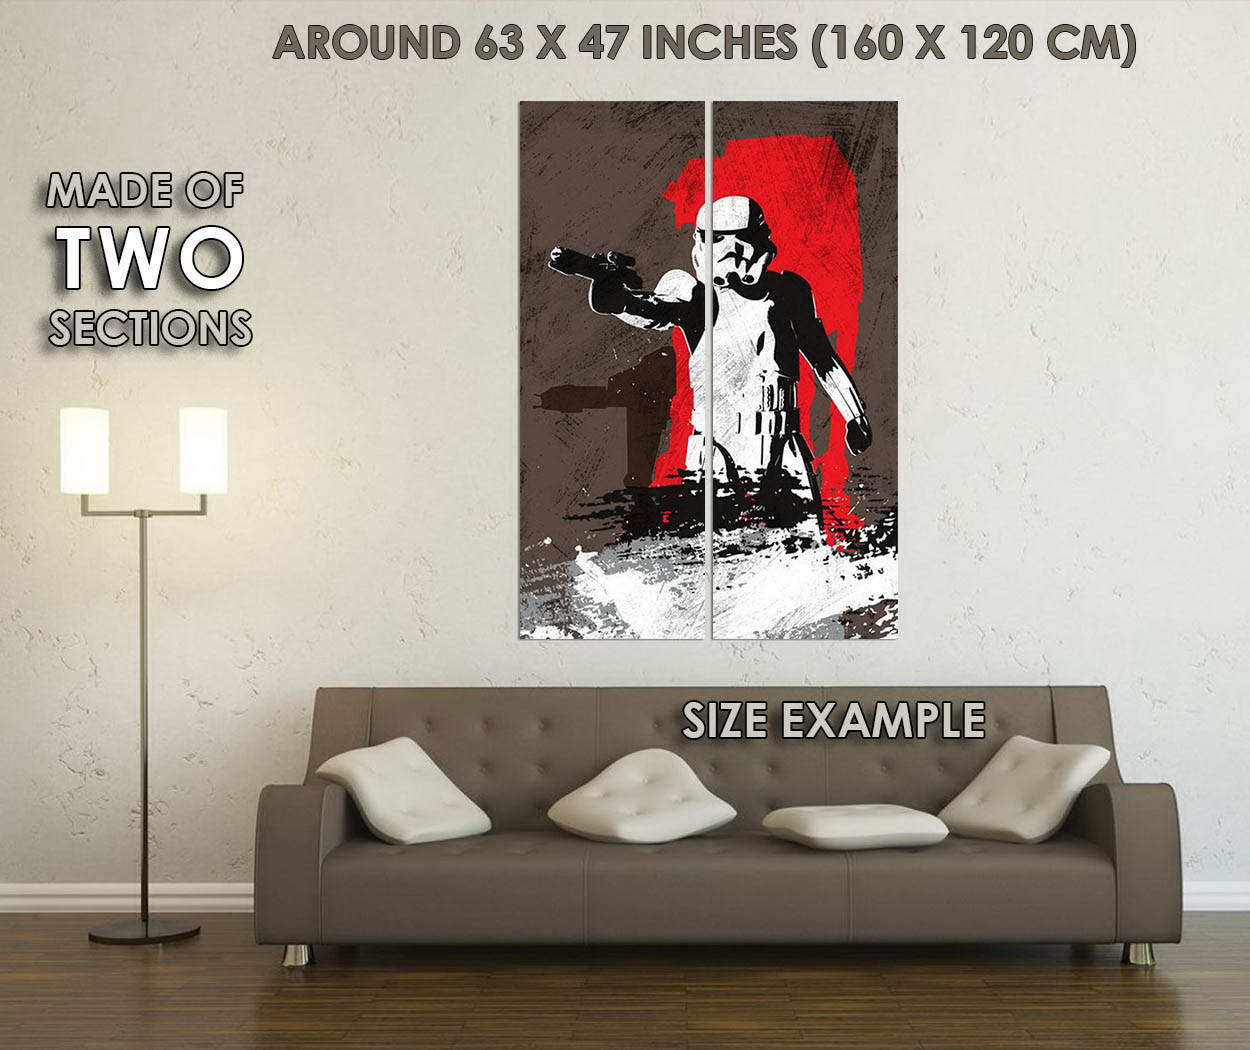 10773-Star-Wars-7-Force-Awakens-Movie-Imperial-Stormtrooper-LAMINATED-POSTER-CA thumbnail 6